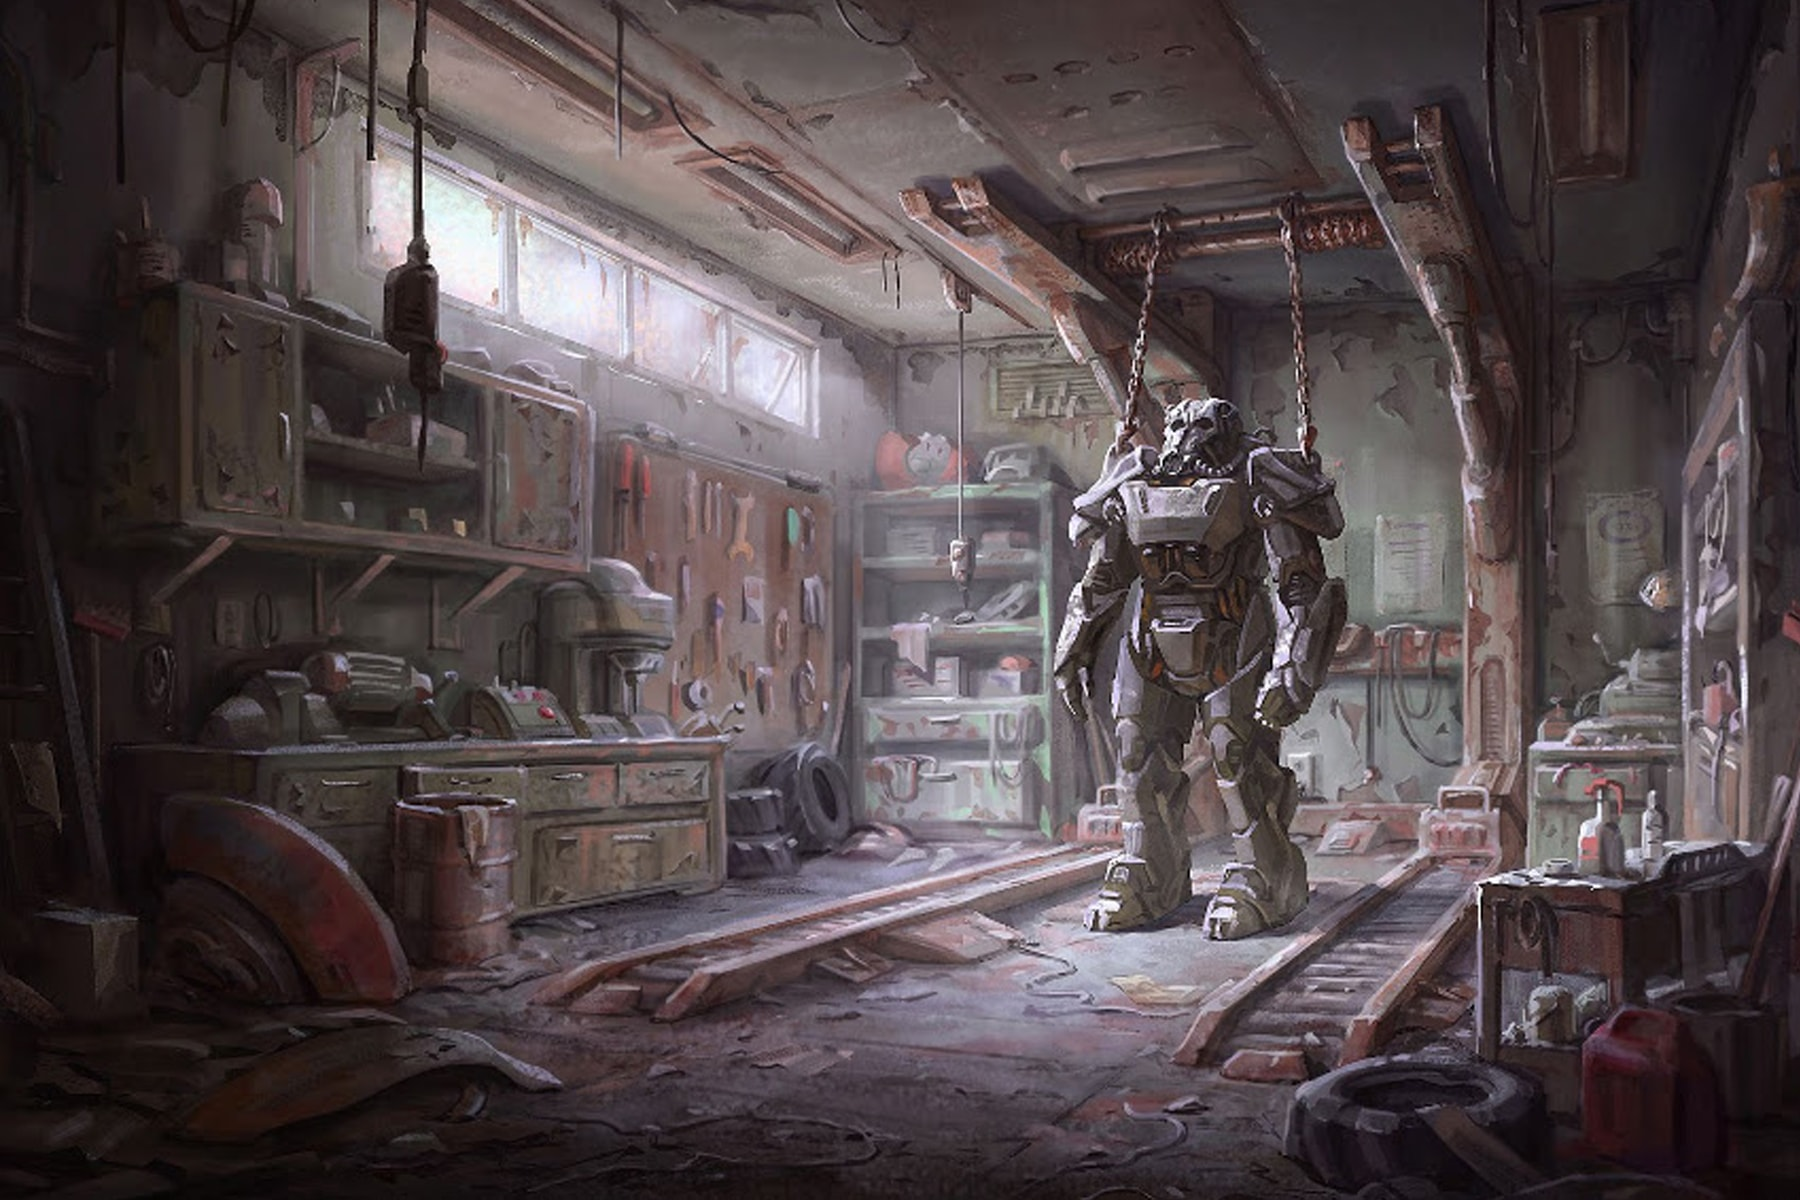 Illustration of a Fallout 4 power armor garage, a dusty workshop filled with tools and an armor suspended from the ceiling